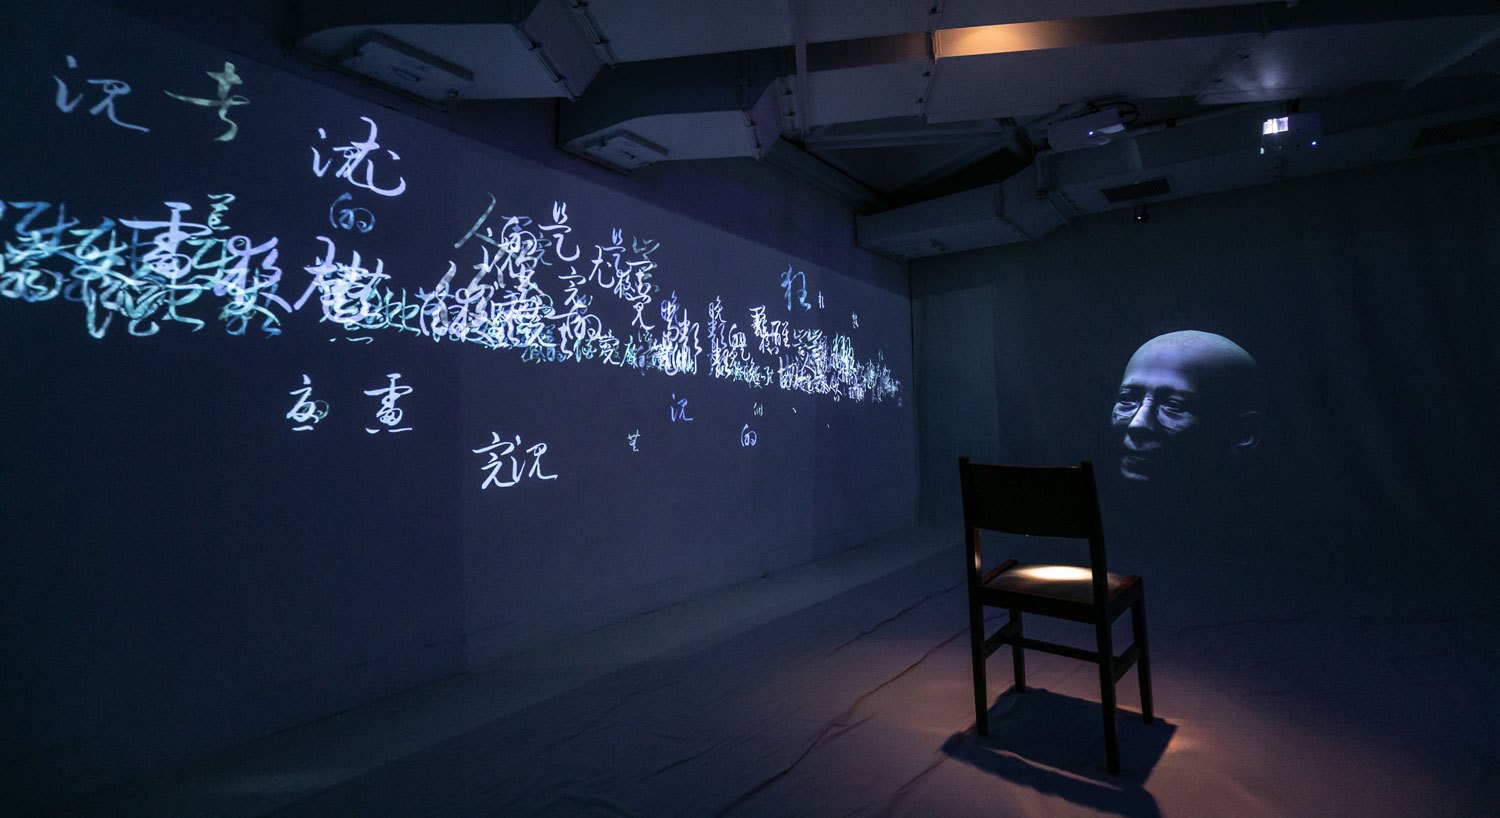 Aesthetics and Freedom of Human Beings by Chan Kwan-chi (Hong Kong)